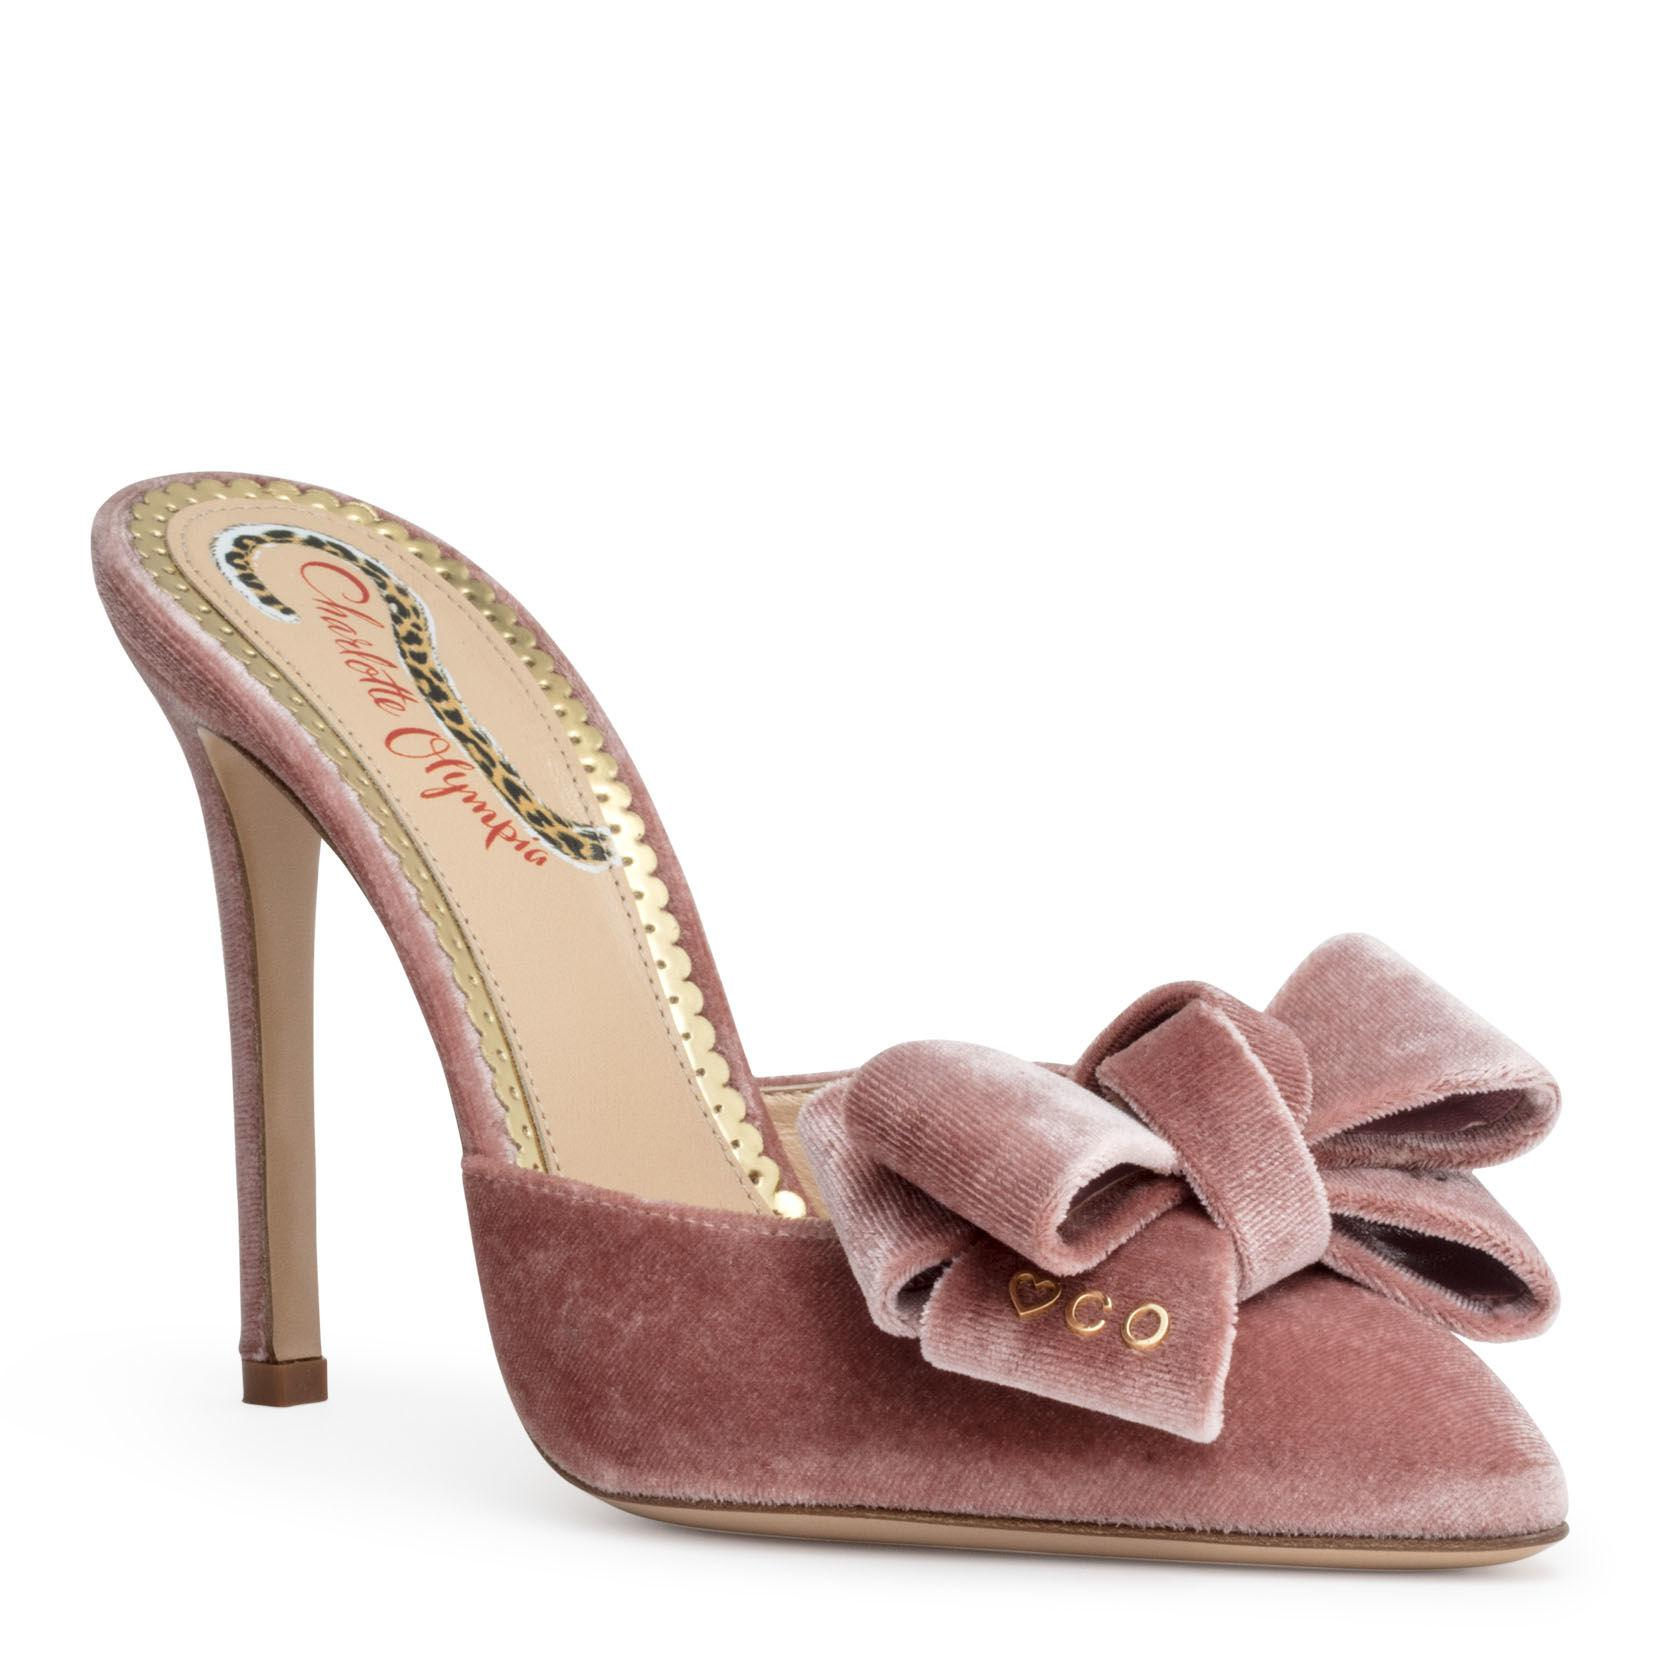 1ae39d9b3b6 Charlotte Olympia Dusty Pink 100 Velvet Mules